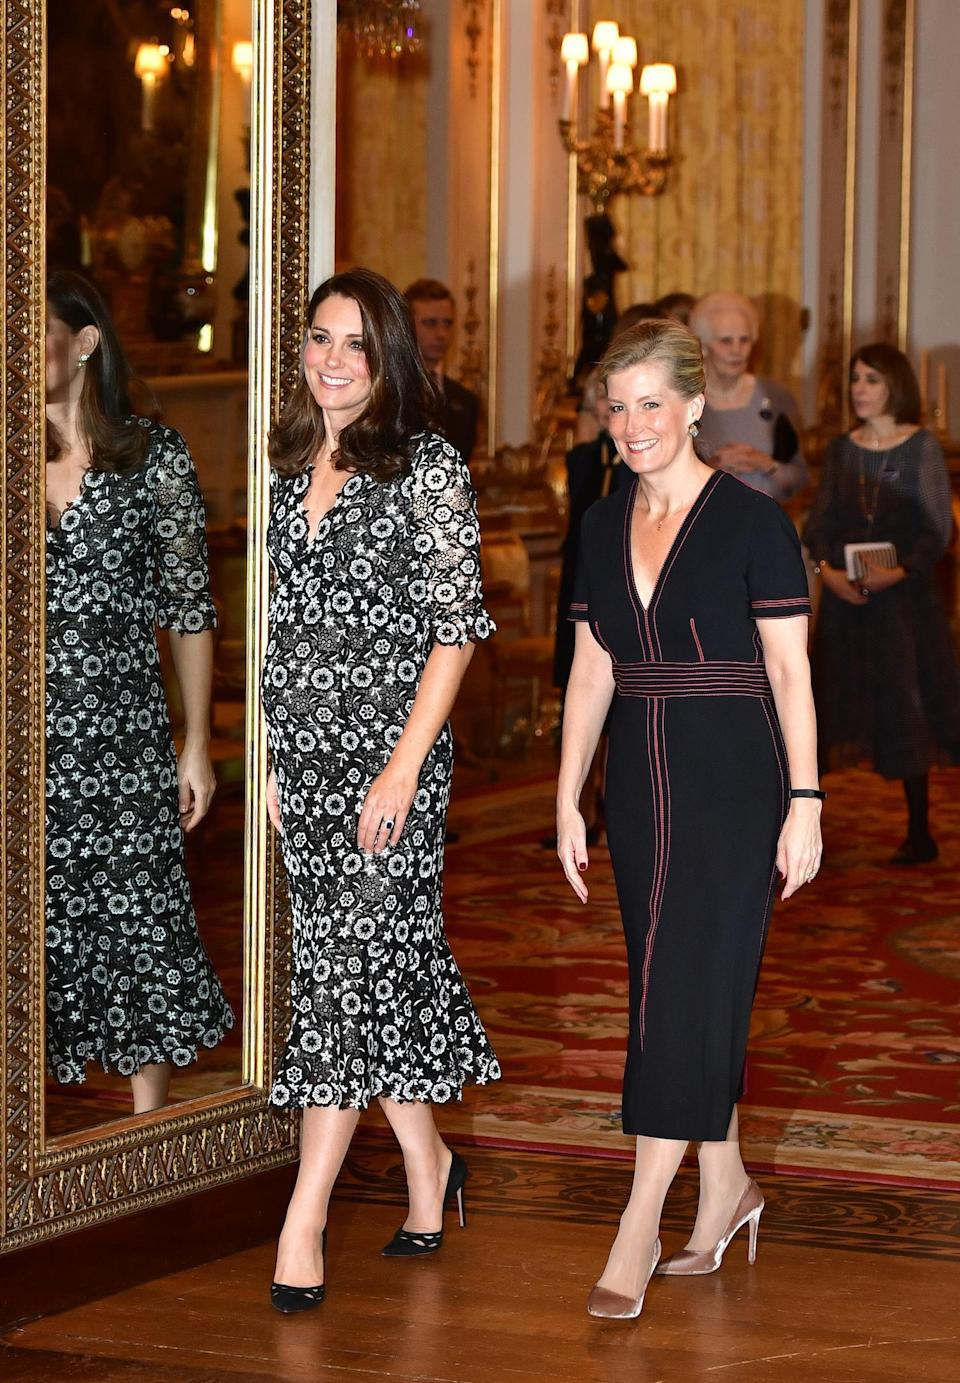 <p>Kate Middleton wears a dark floral dress by Erdem at a fashion reception at Buckingham Palace alongside Sophie, Countess of Wessex. (Photo: Getty Images) </p>